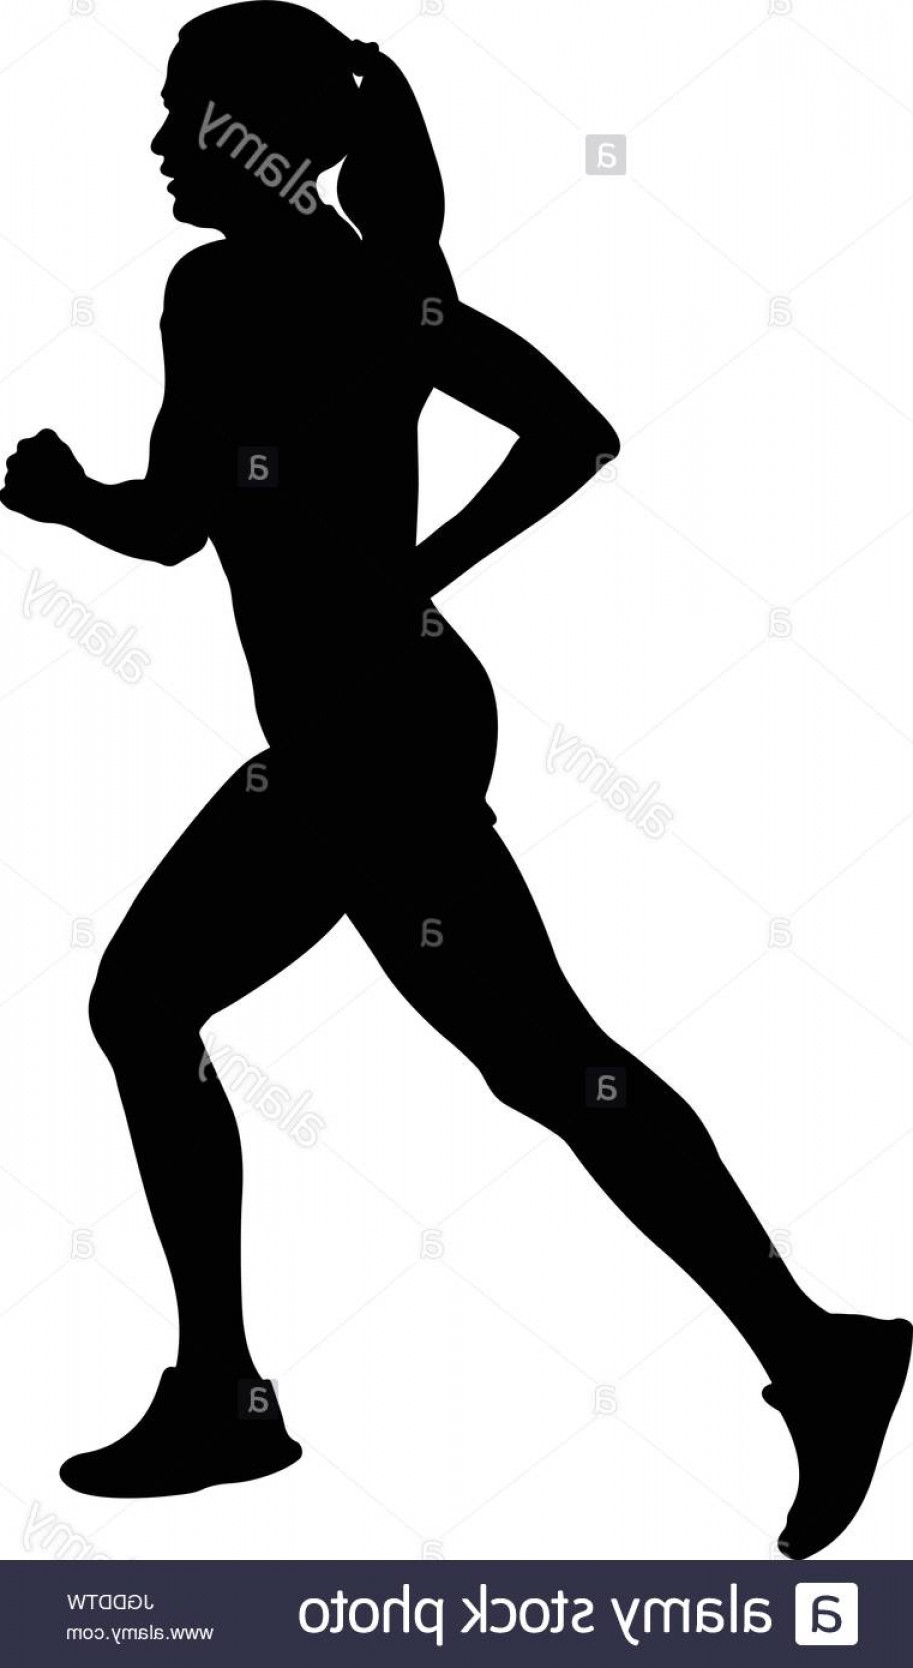 Vector Silhouette Of Girl Running Track: Stock Photo Girl Athlete Runner Running Side View Black Silhouette